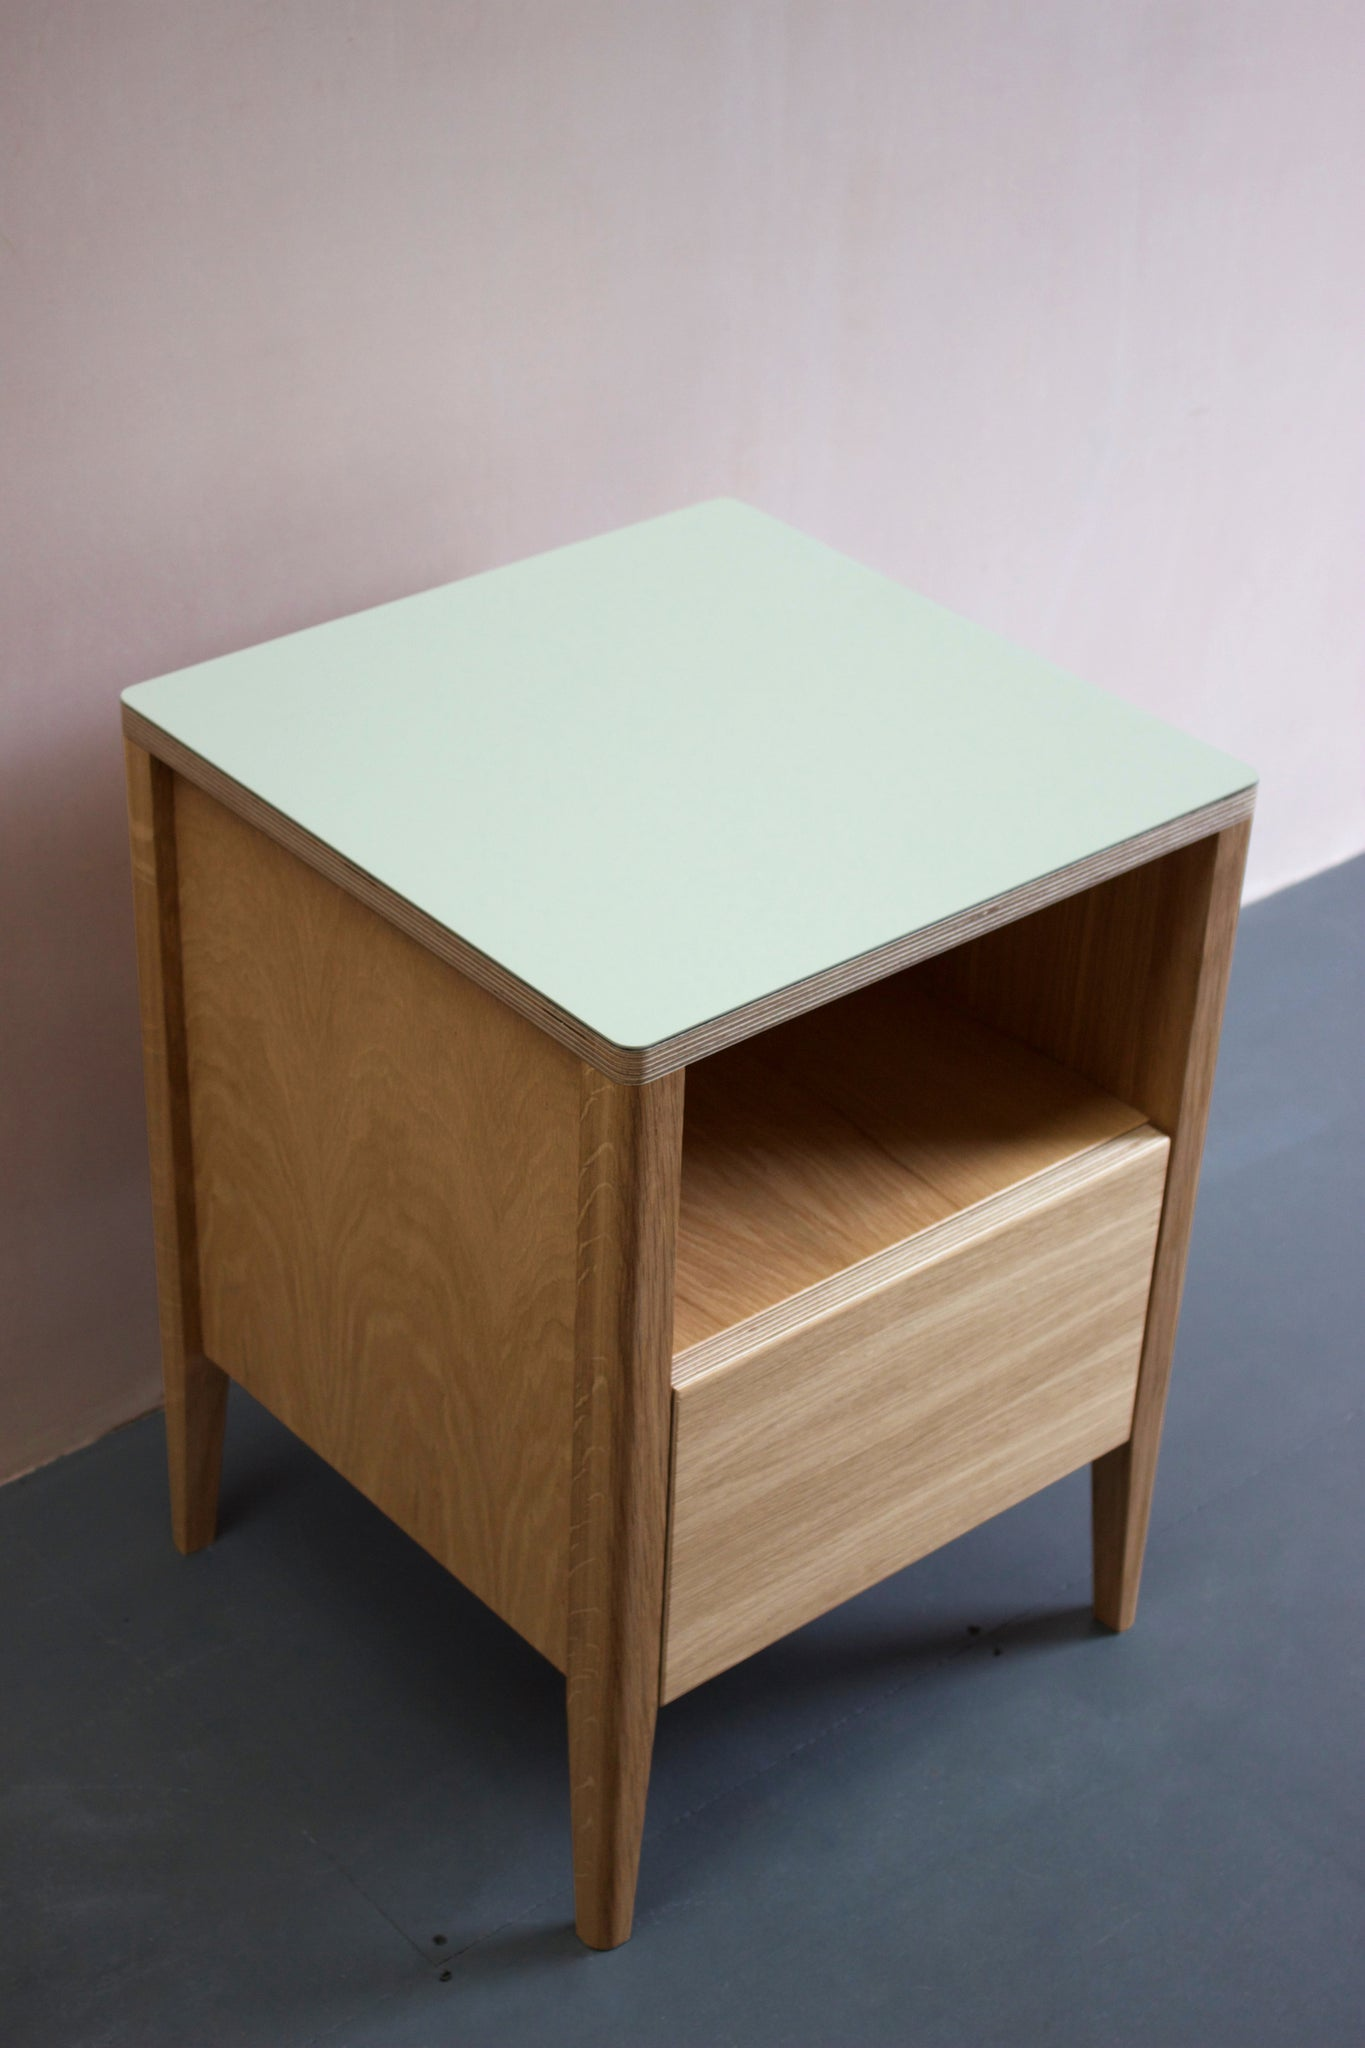 Handmade  bedside table, perfect for a modern home. It features Forbo linoleum top with oak veneered plywood and solid oak legs. Made by Jon Grant London in Leyton, East London.